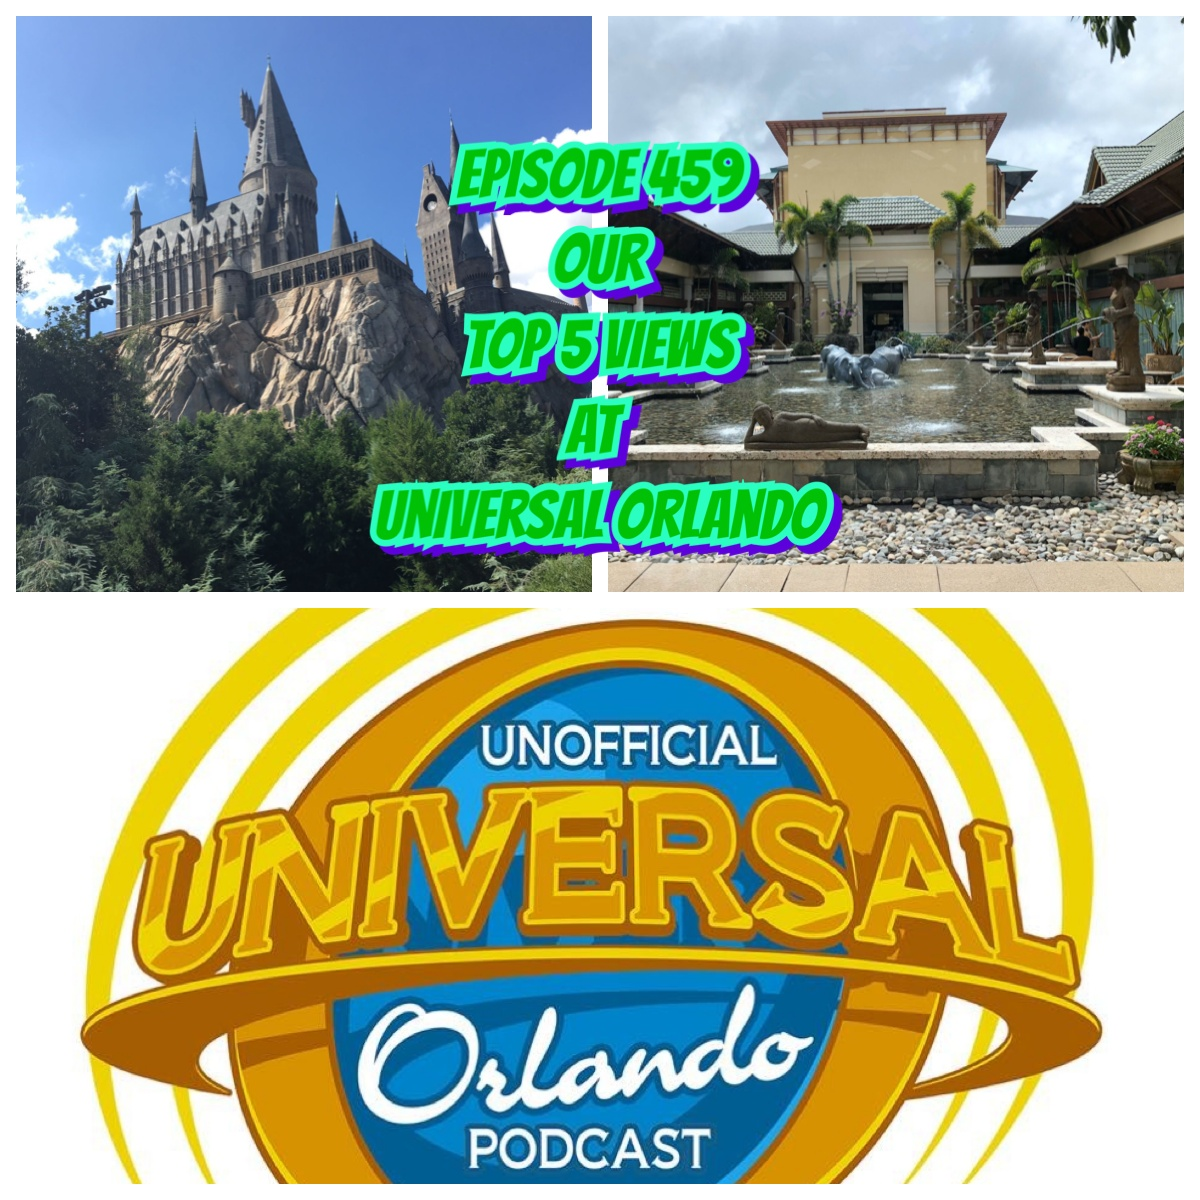 UUOP #459 - Our Top 5 Views at Universal Orlando show art